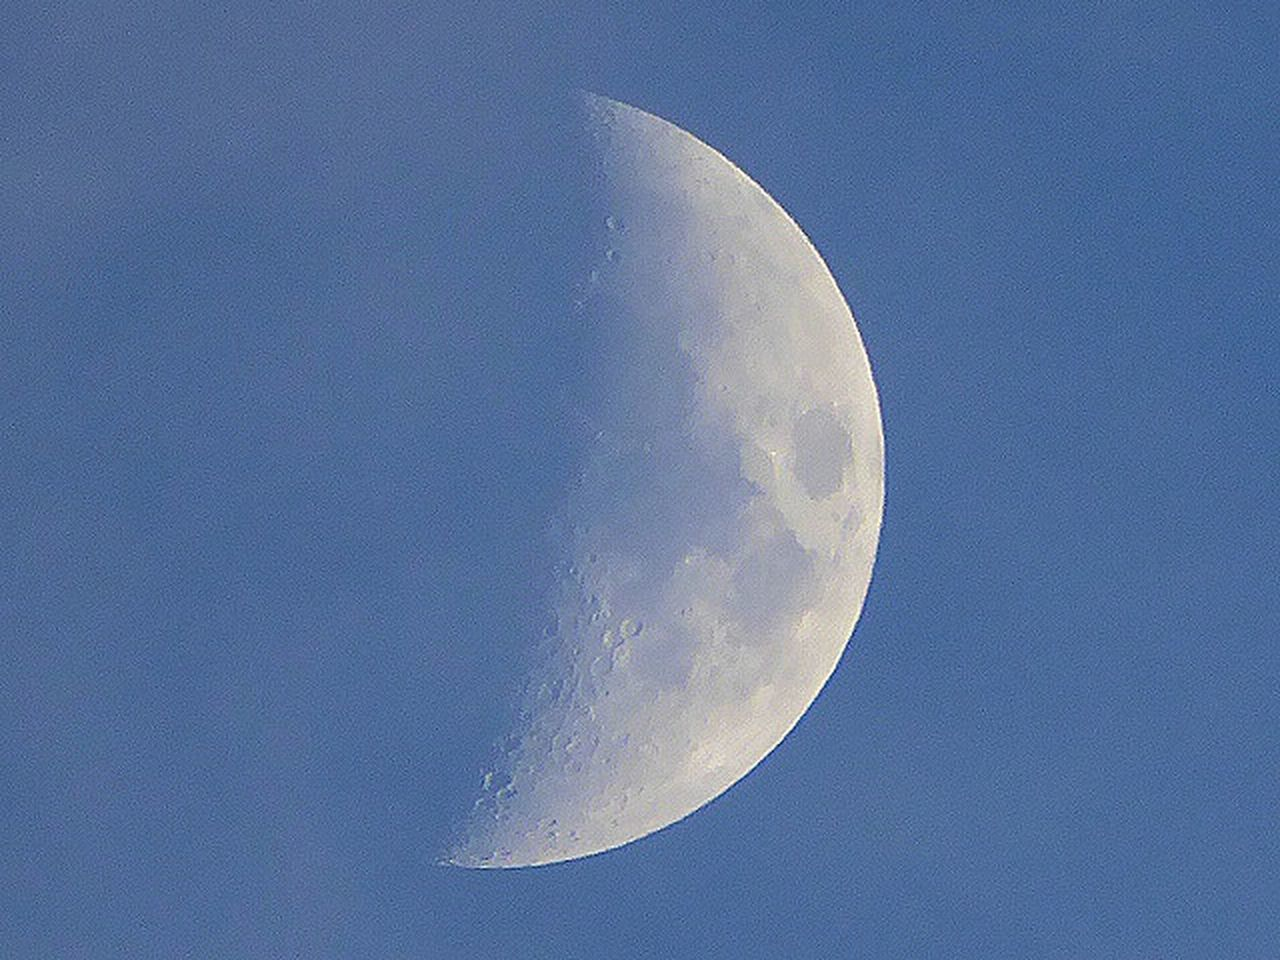 moon, astronomy, beauty in nature, night, nature, moon surface, planetary moon, scenics, majestic, clear sky, tranquil scene, half moon, tranquility, blue, crescent, sky, outdoors, space, low angle view, space exploration, no people, close-up